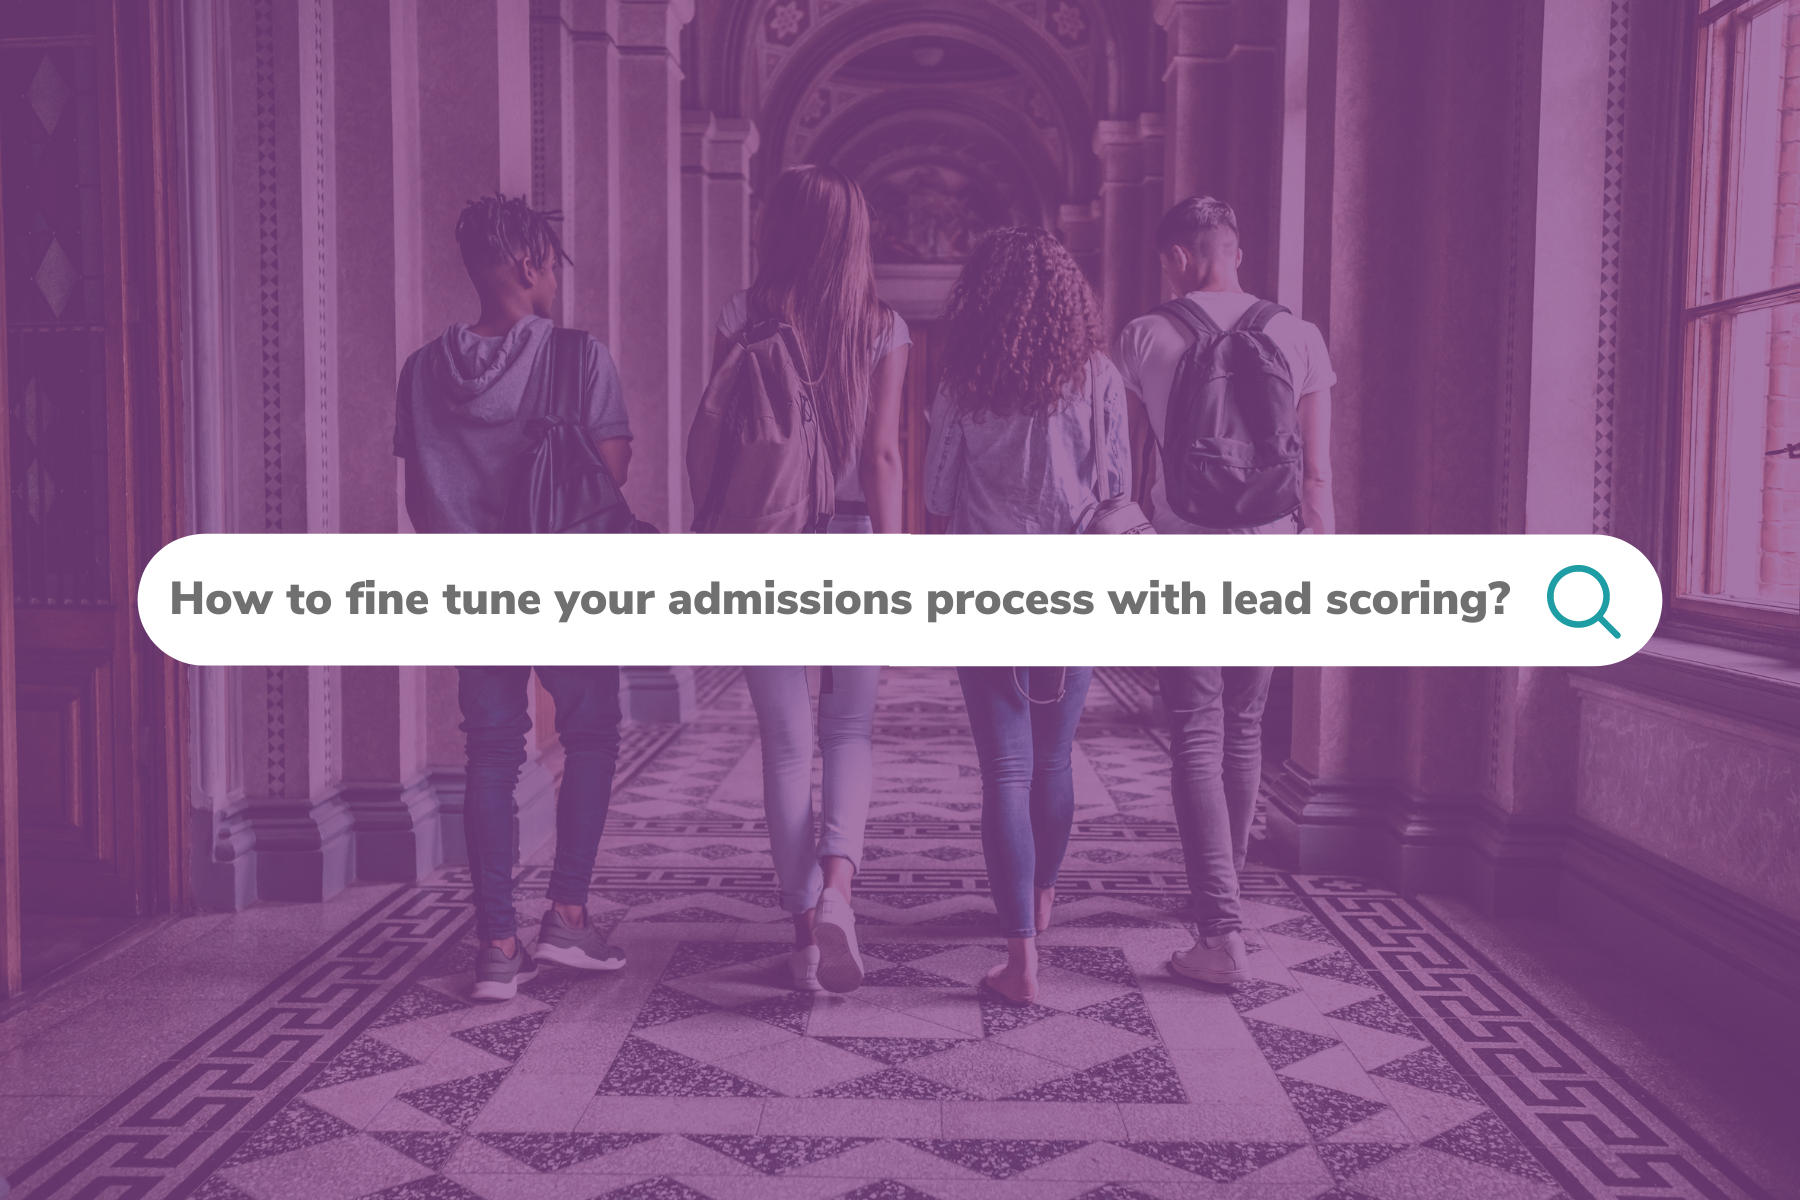 How to fine tune your admissions process with lead scoring?